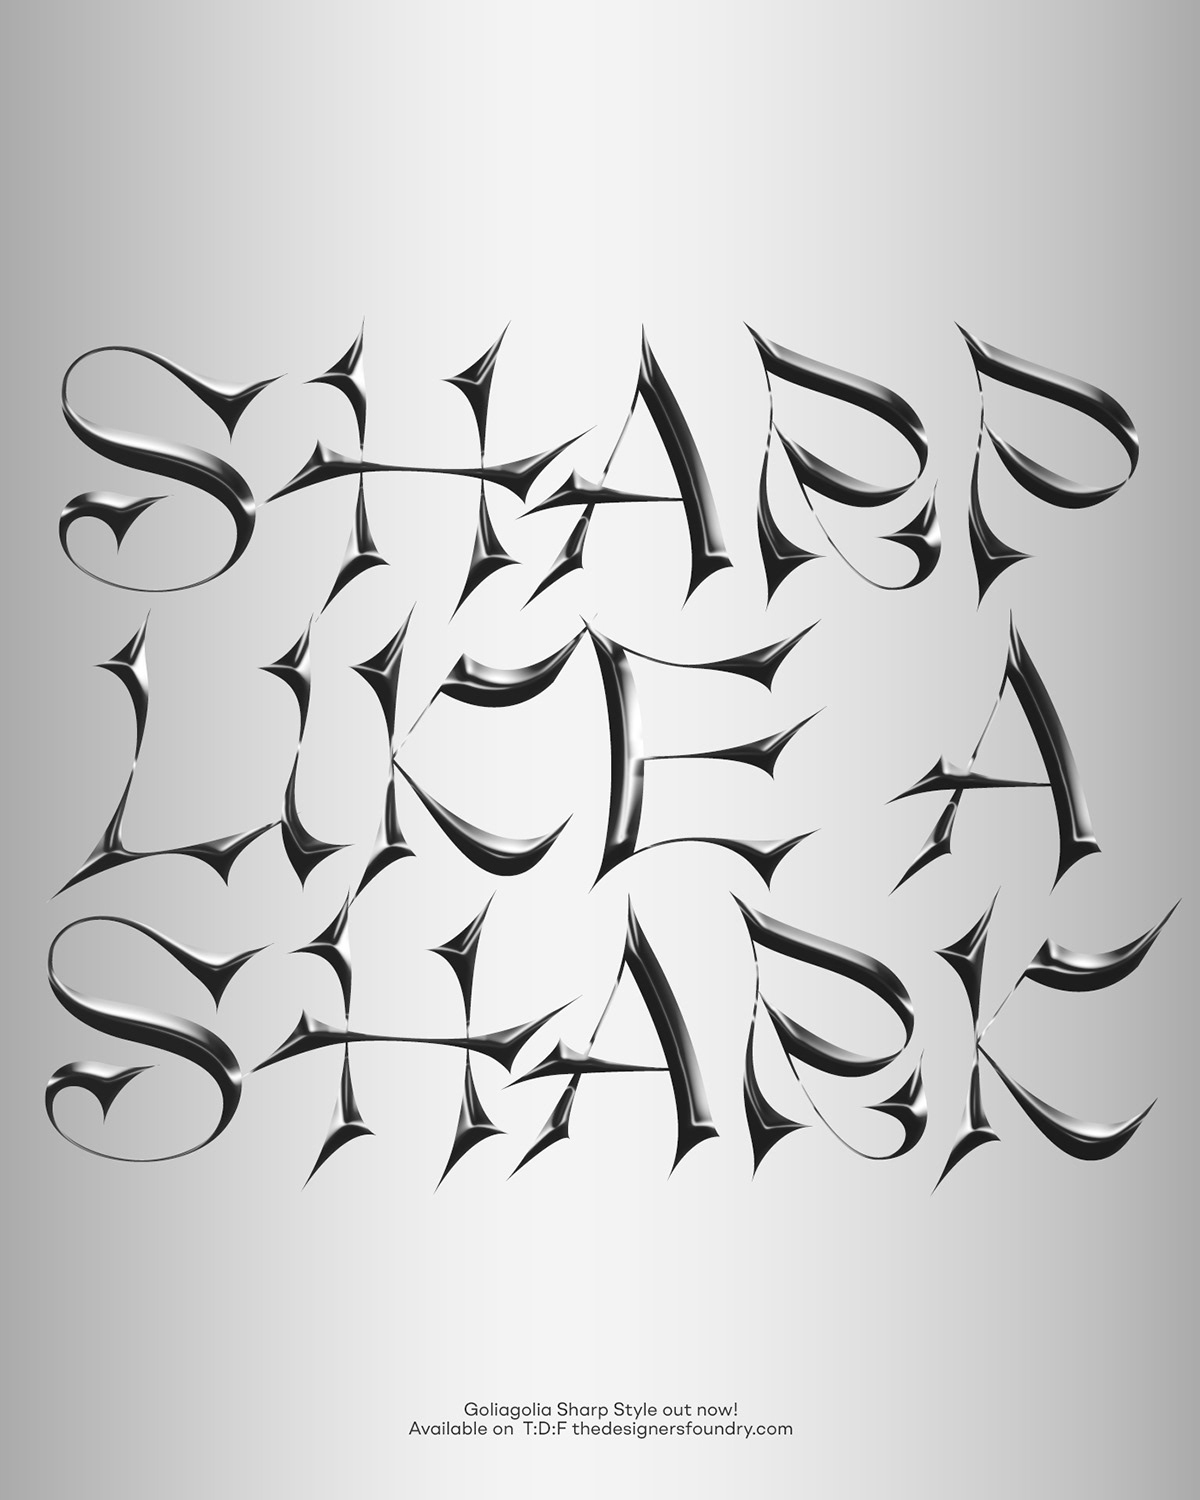 GoliaGolia Font - SHARP STYLE on Behance